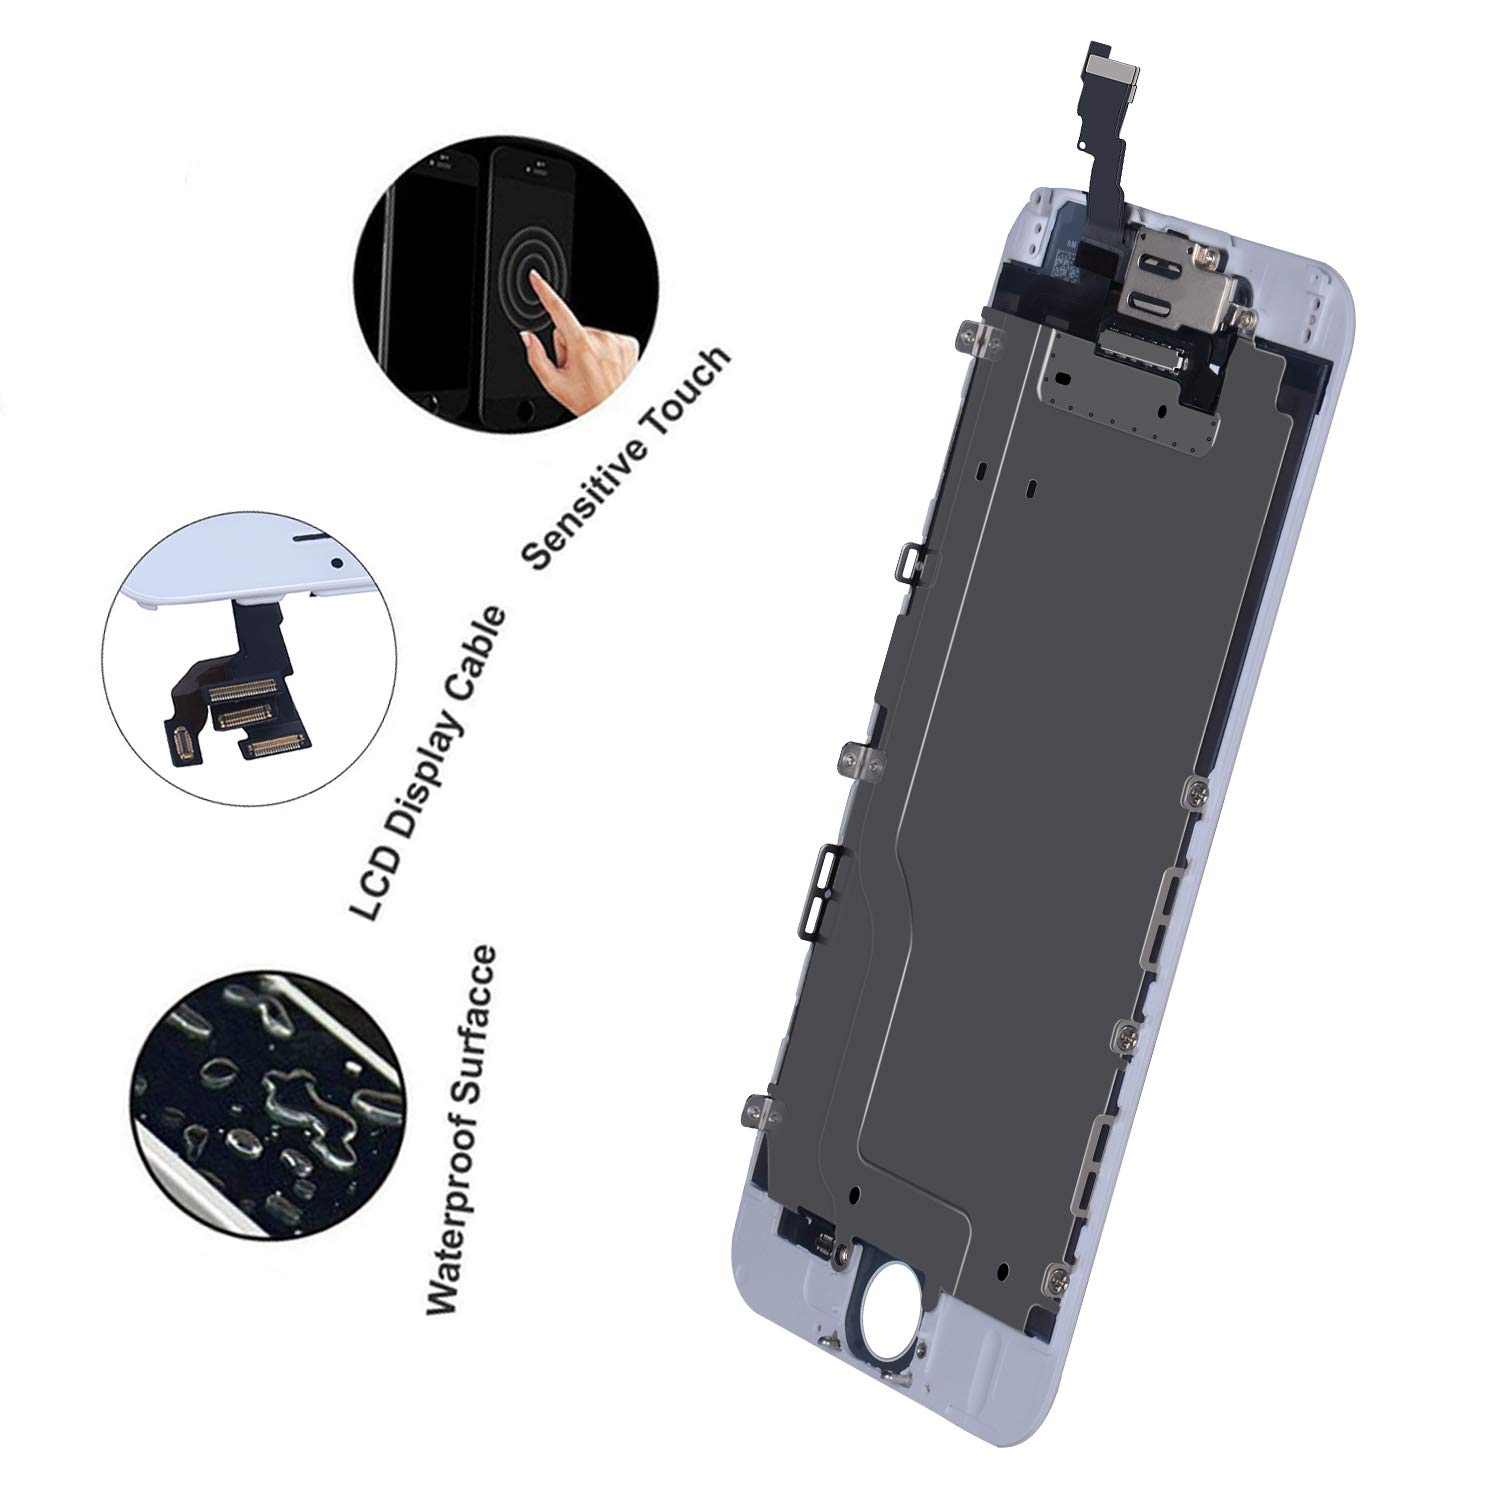 8ffad235457305 BeeFix Compatible iPhone SE/5S LCD Display Touch Screen Digitizer  Replacement Kit with Free Repair Tools ...